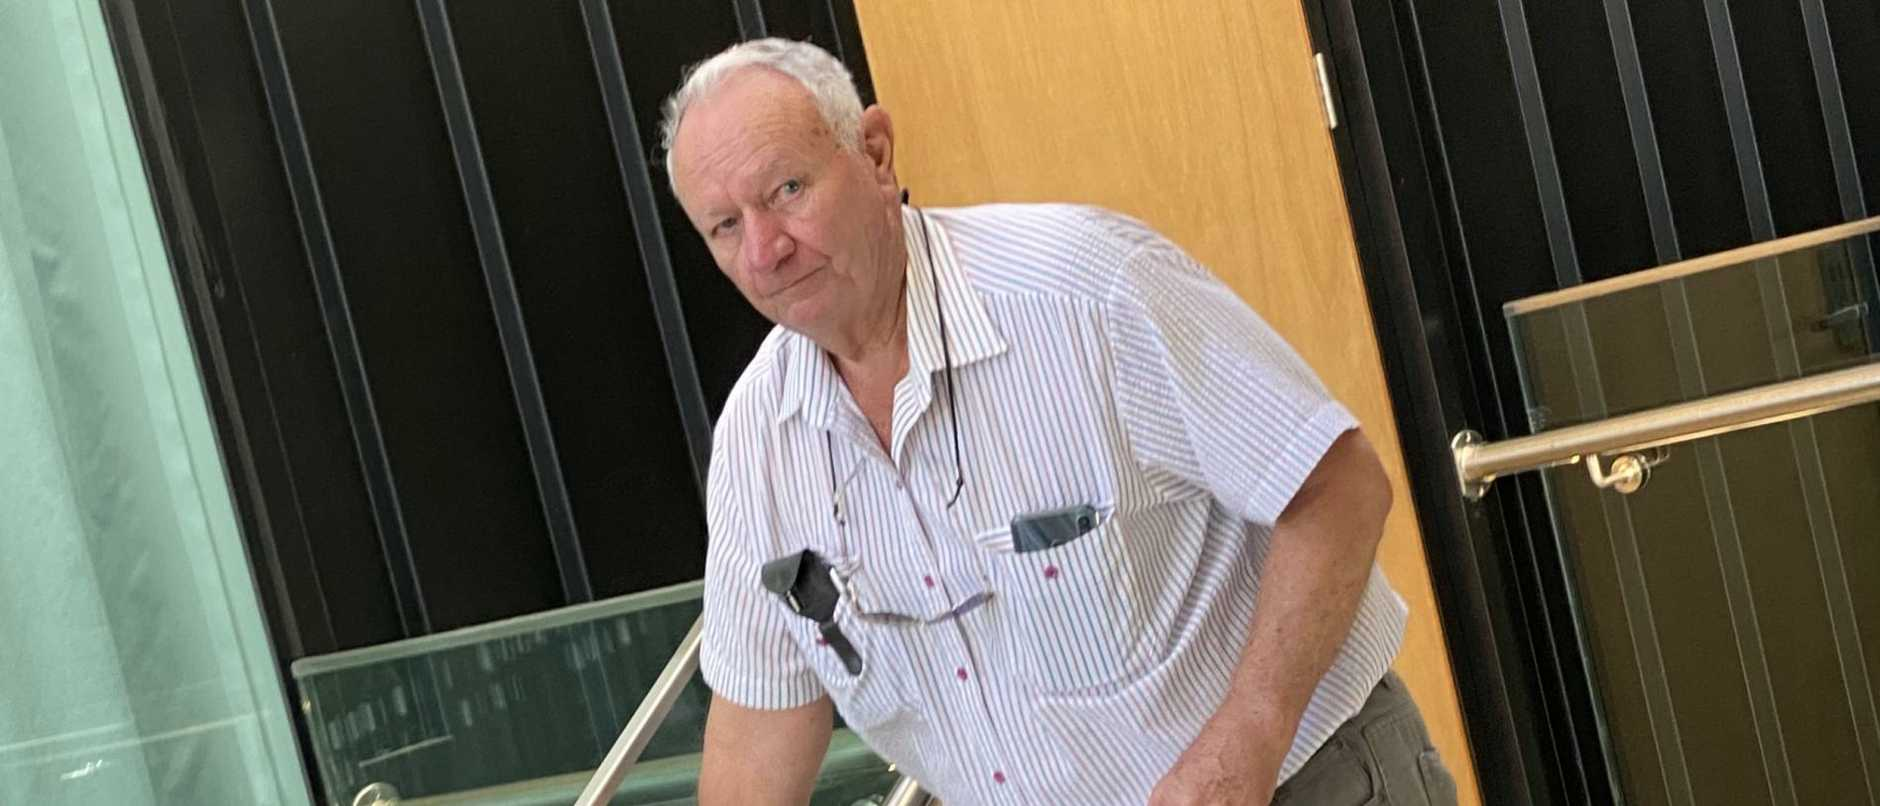 A 73-year-old North Queensland man has been committed to stand trial over allegations he sexually abused two vulnerable male aged-care patients.